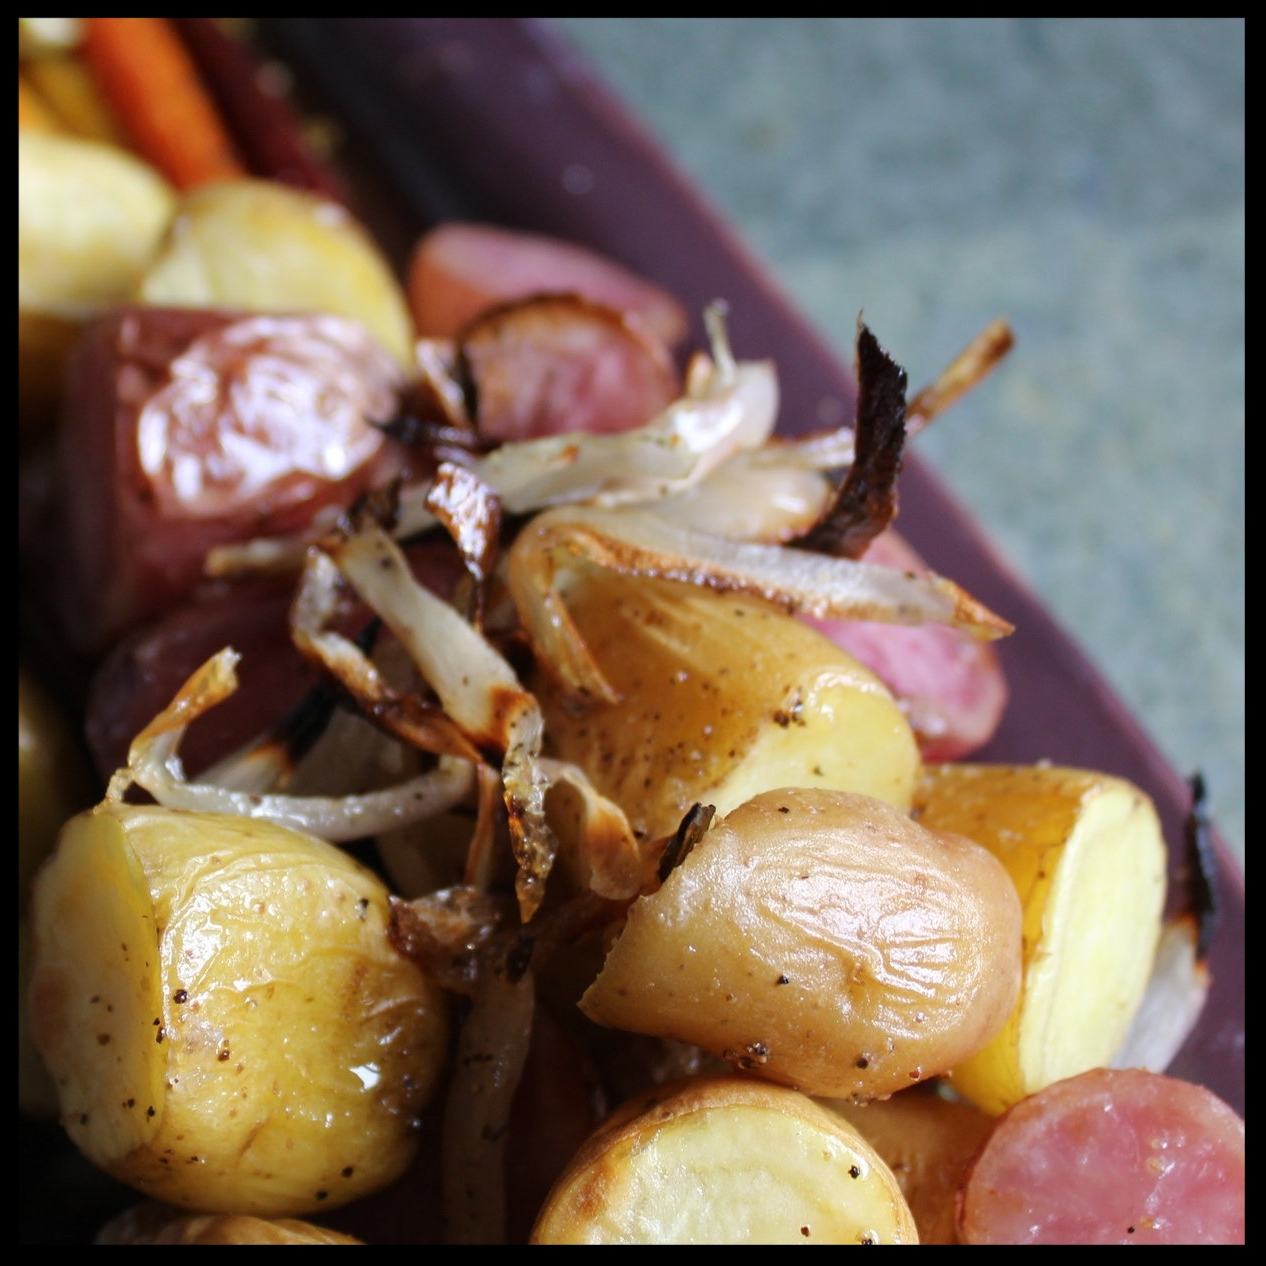 9. To serve the potatoes, smear some pesto on a plate and top with a mound of the potatoes, remembering to grab the shallots and pile on top.  10. Serve with some of the pesto on the side. Enjoy!